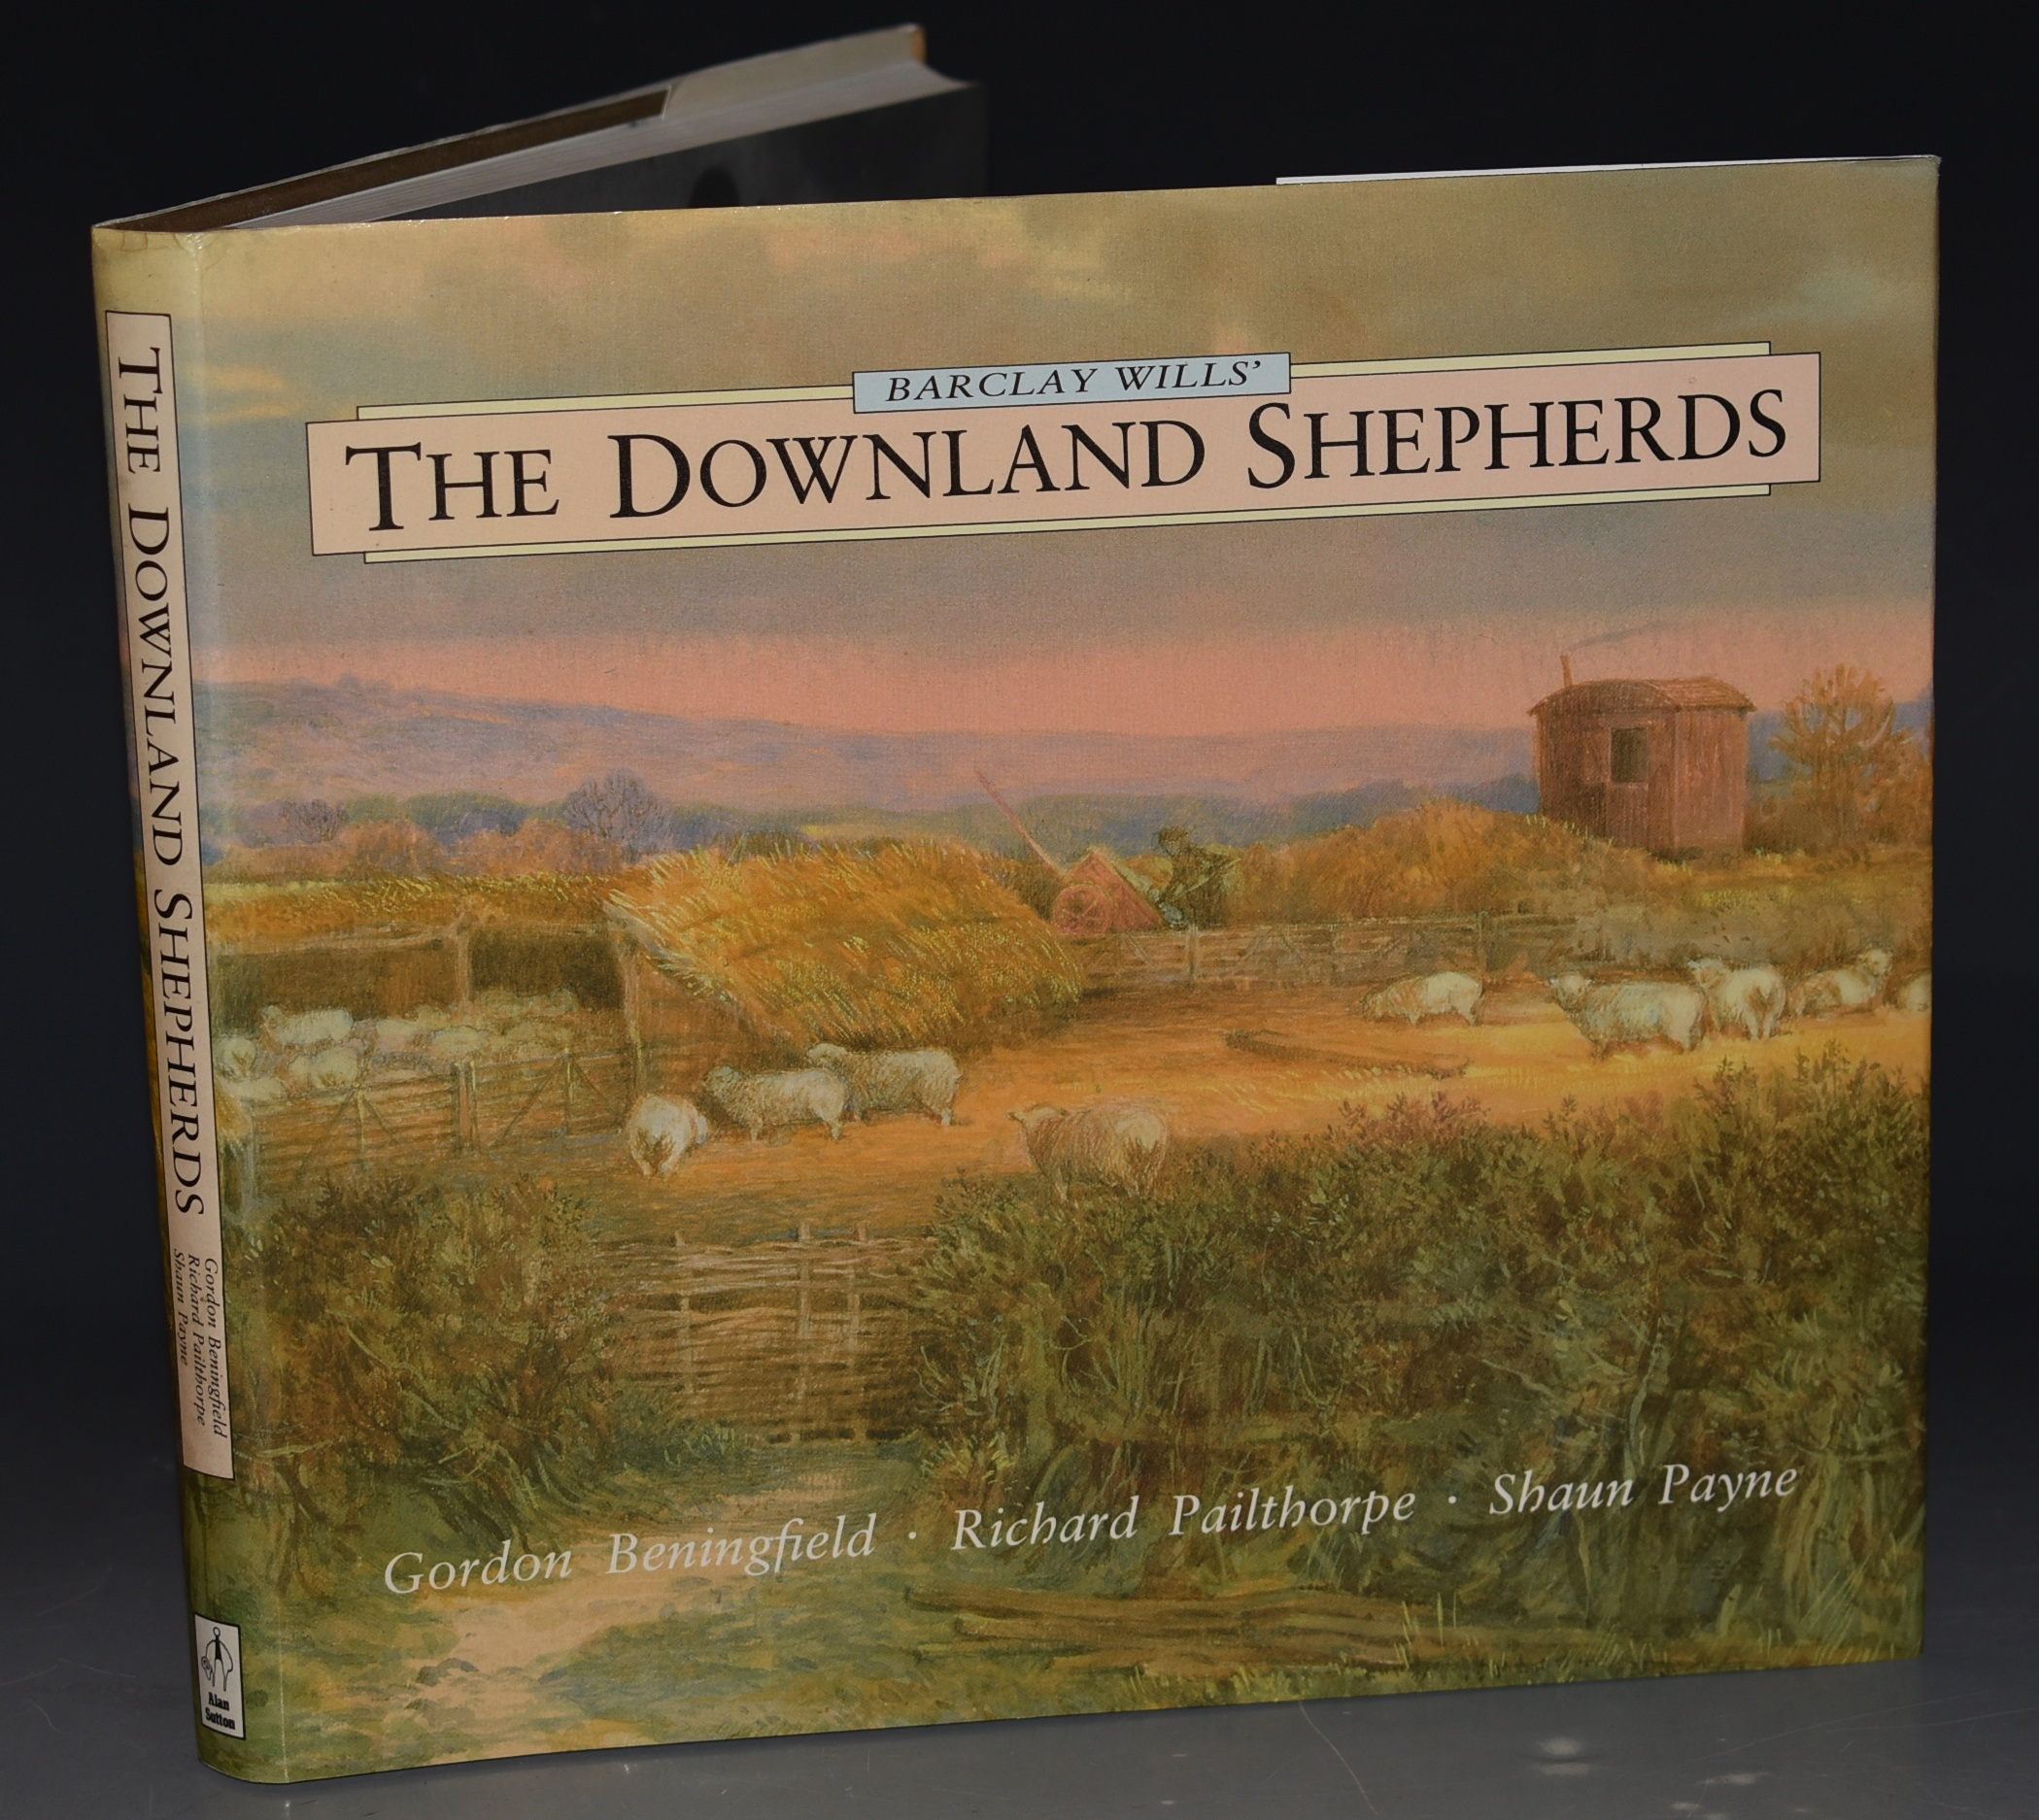 Image for Barclay Wills' The Downland Shepherds. Edited by Shaun Payne and Richard Pailthorpe. Foreword by Bob Copper. SIGNED COPY.